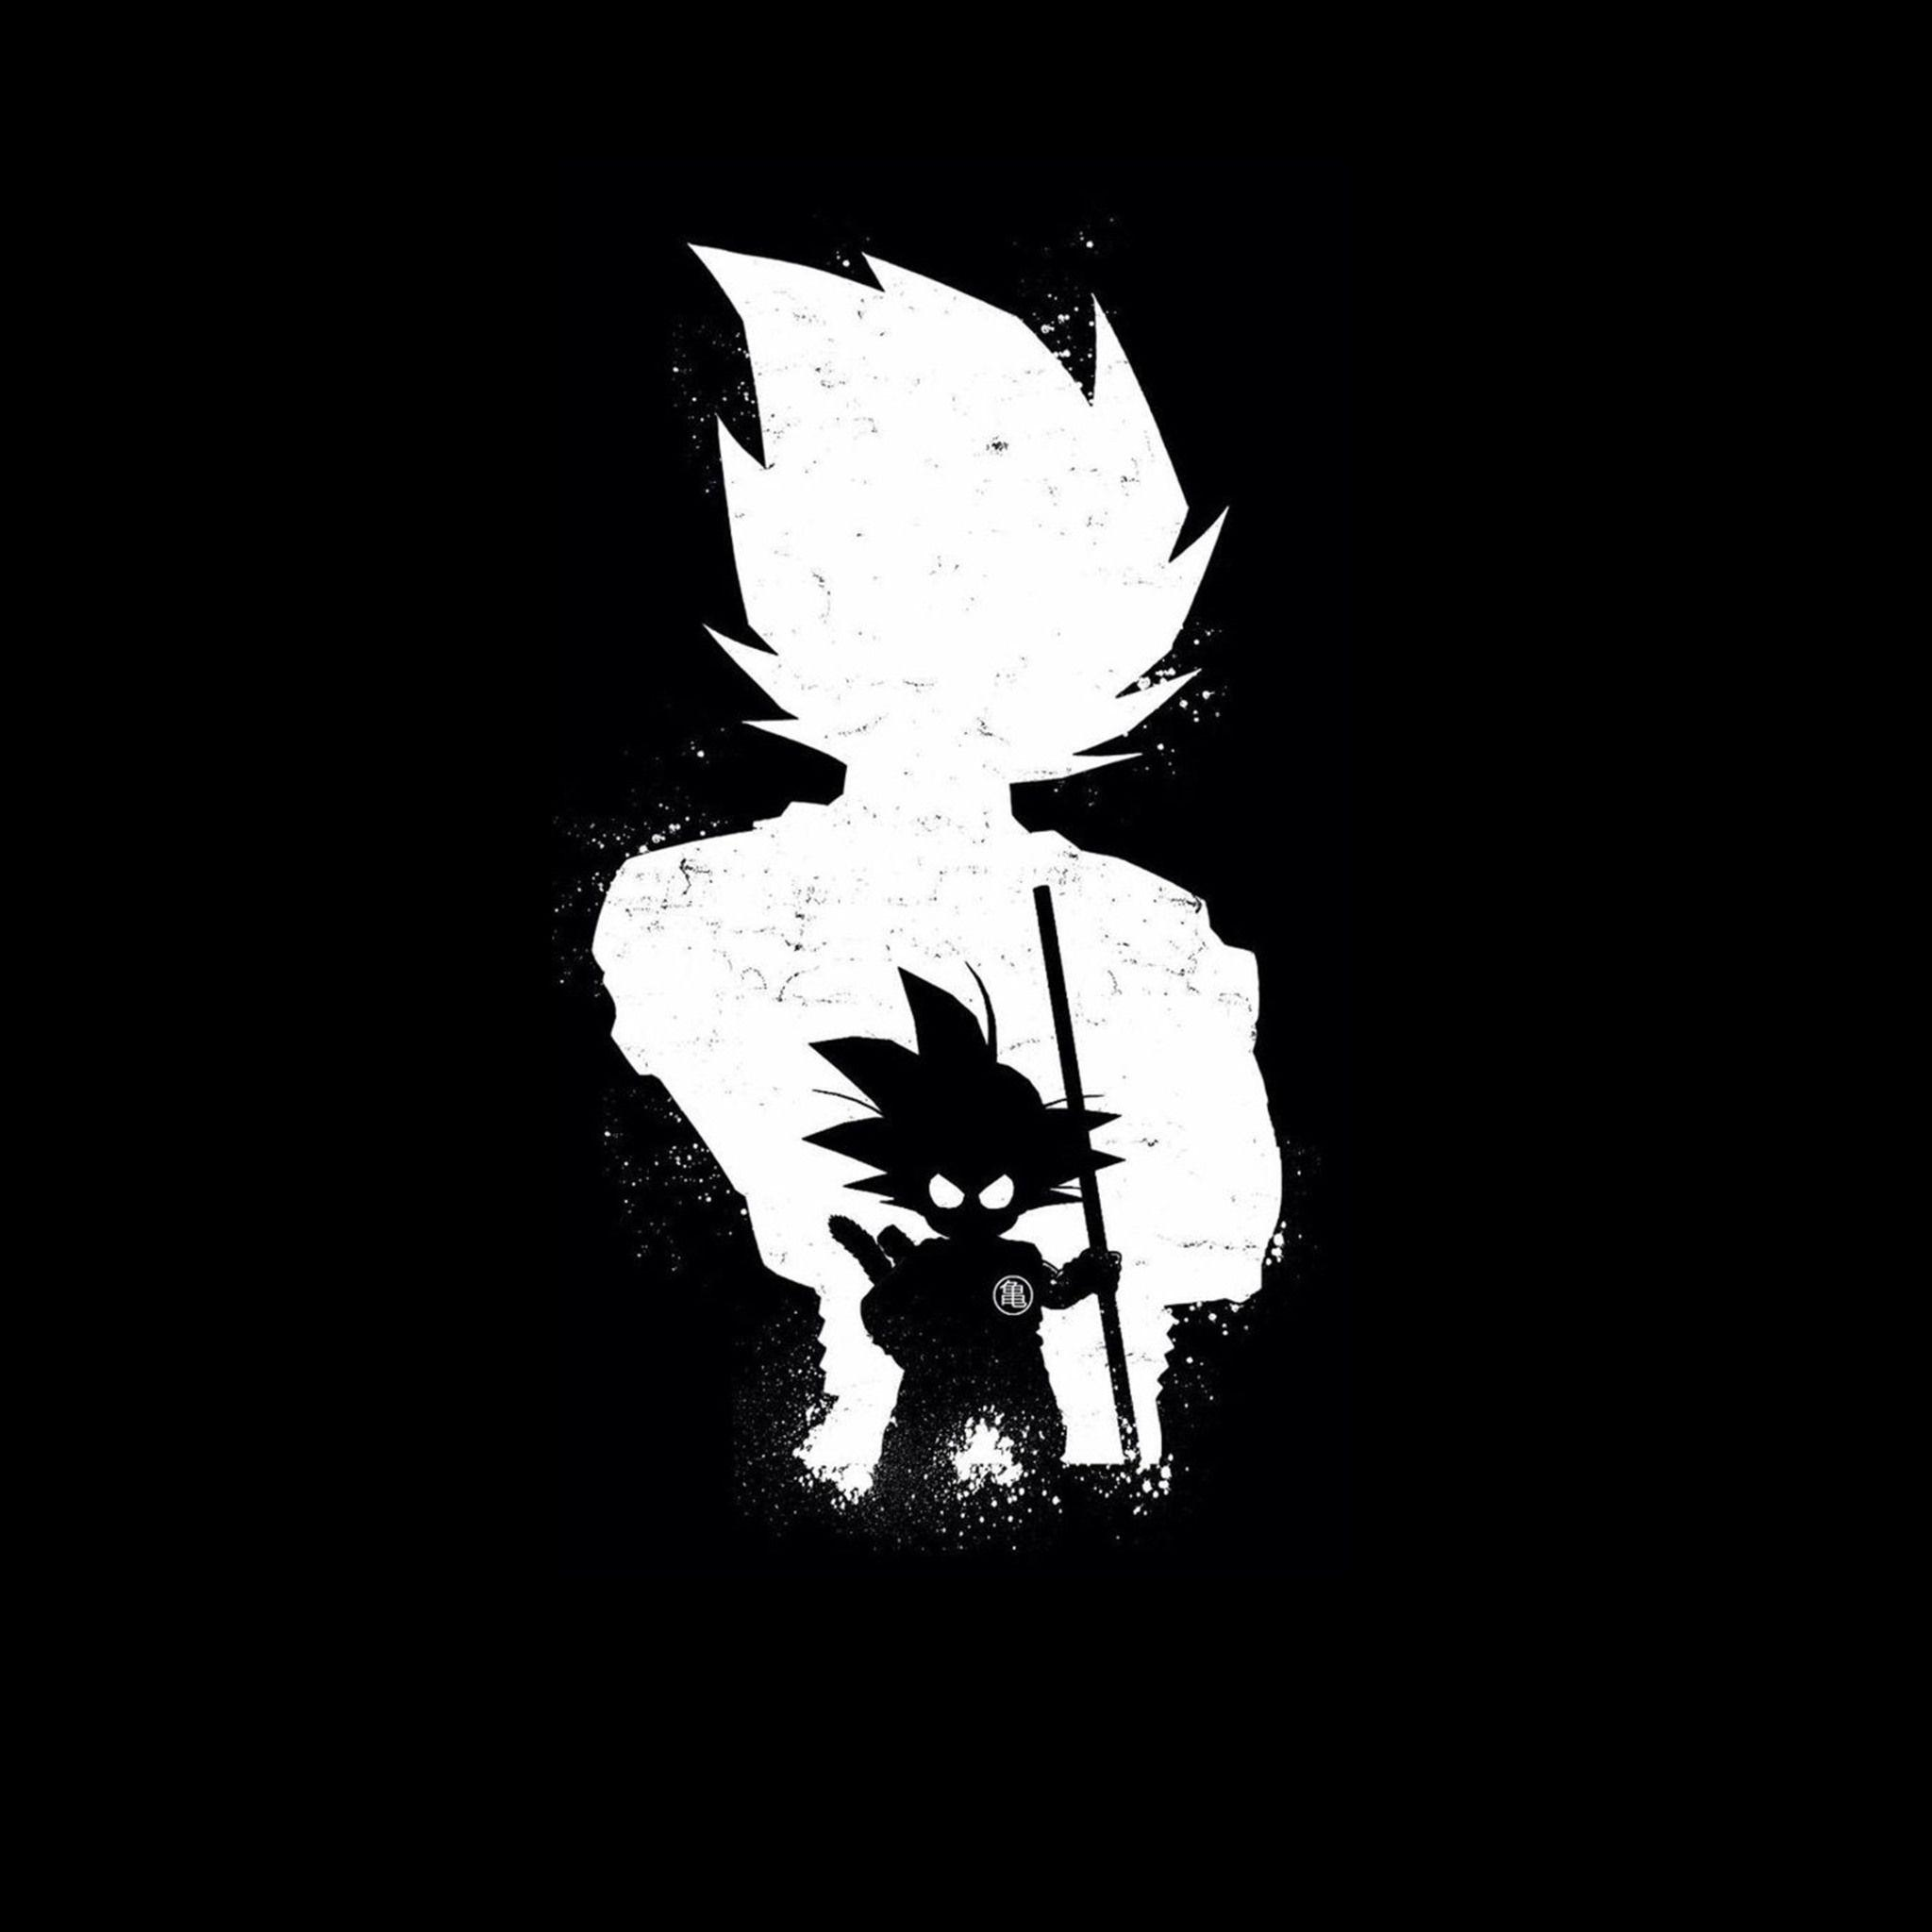 Goku Black And White Wallpapers Wallpaper Cave